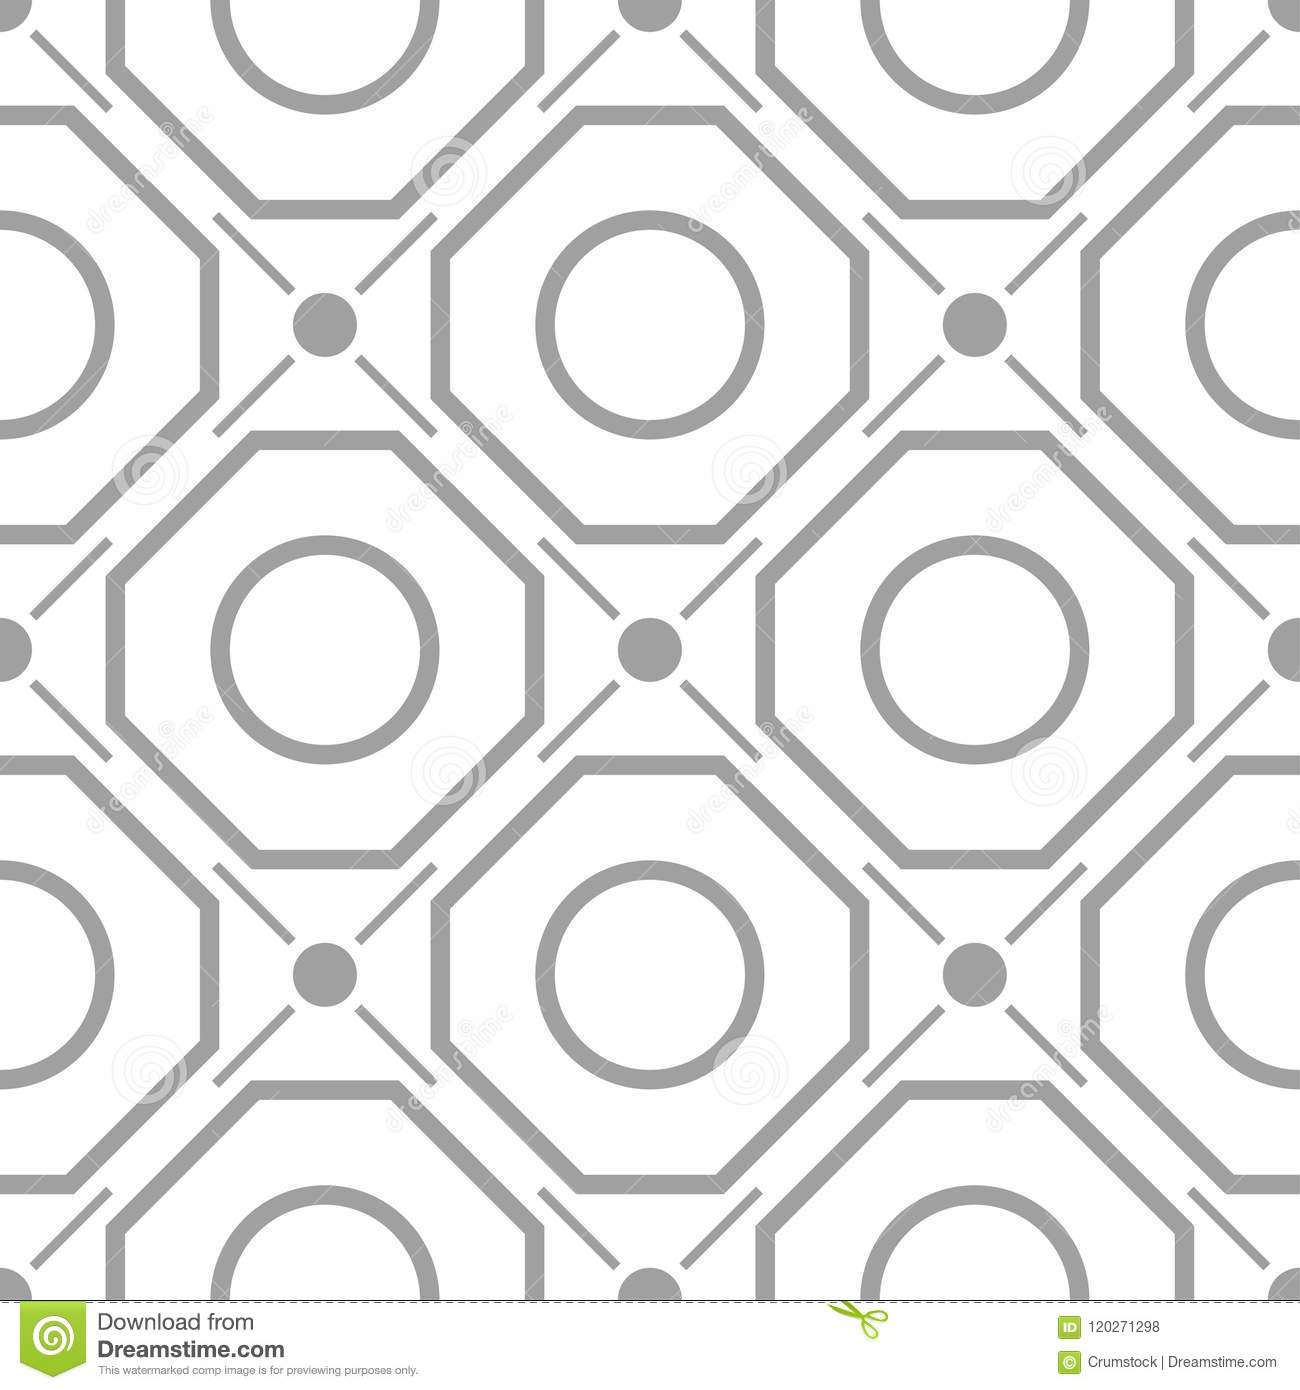 Light gray geometric ornament. Seamless pattern